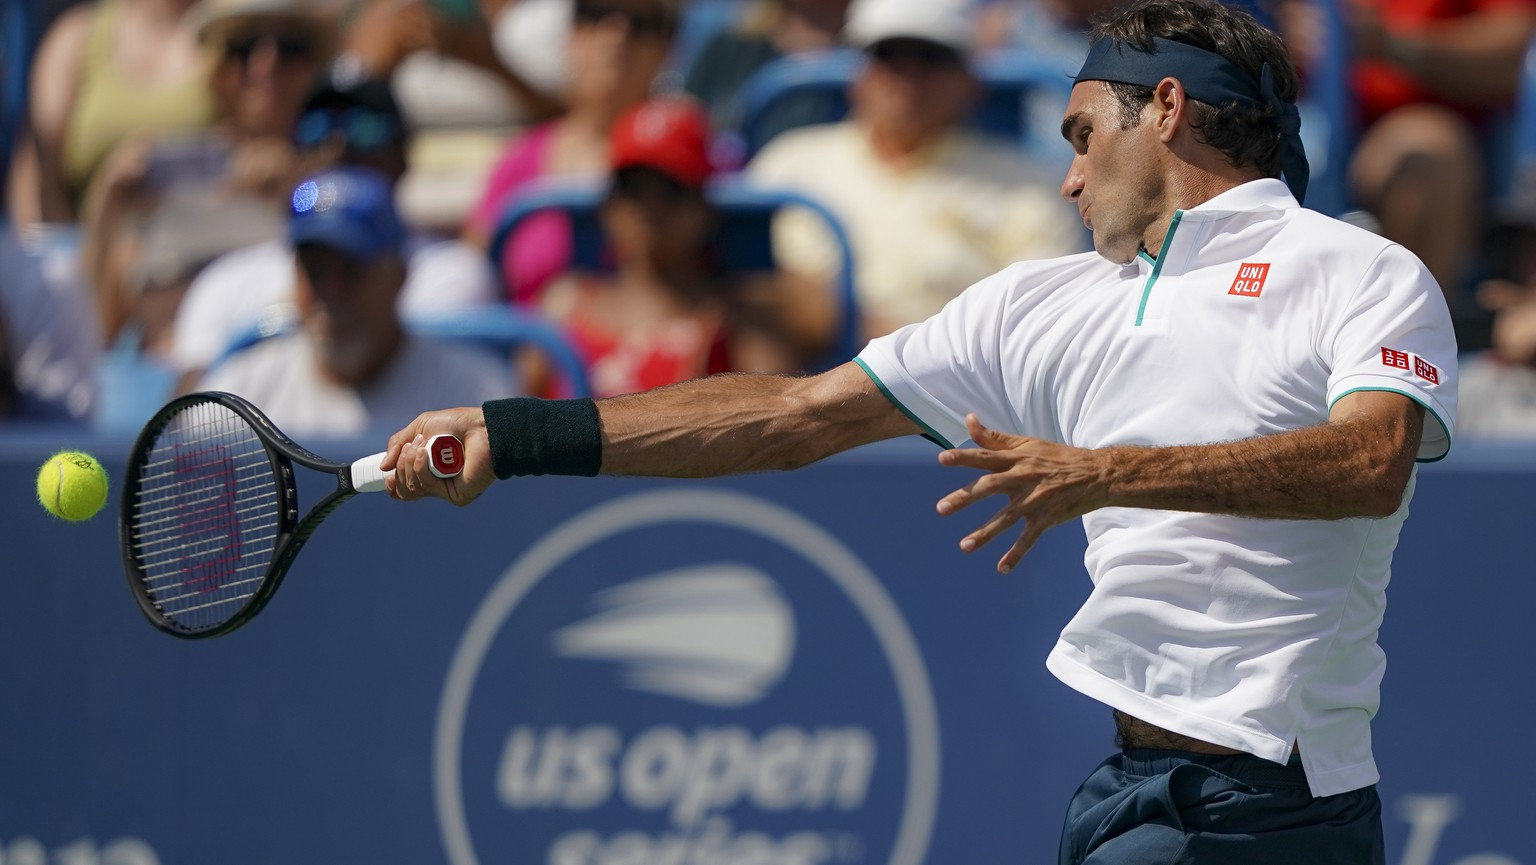 Roger Federer, of Switzerland, returns to Andrey Rublev, of Russa, during the quarterfinals of the Western & Southern Open tennis tournament, Thursday, Aug. 15, 2019, in Mason, Ohio. (AP Photo/John Minchillo) Roger Federer